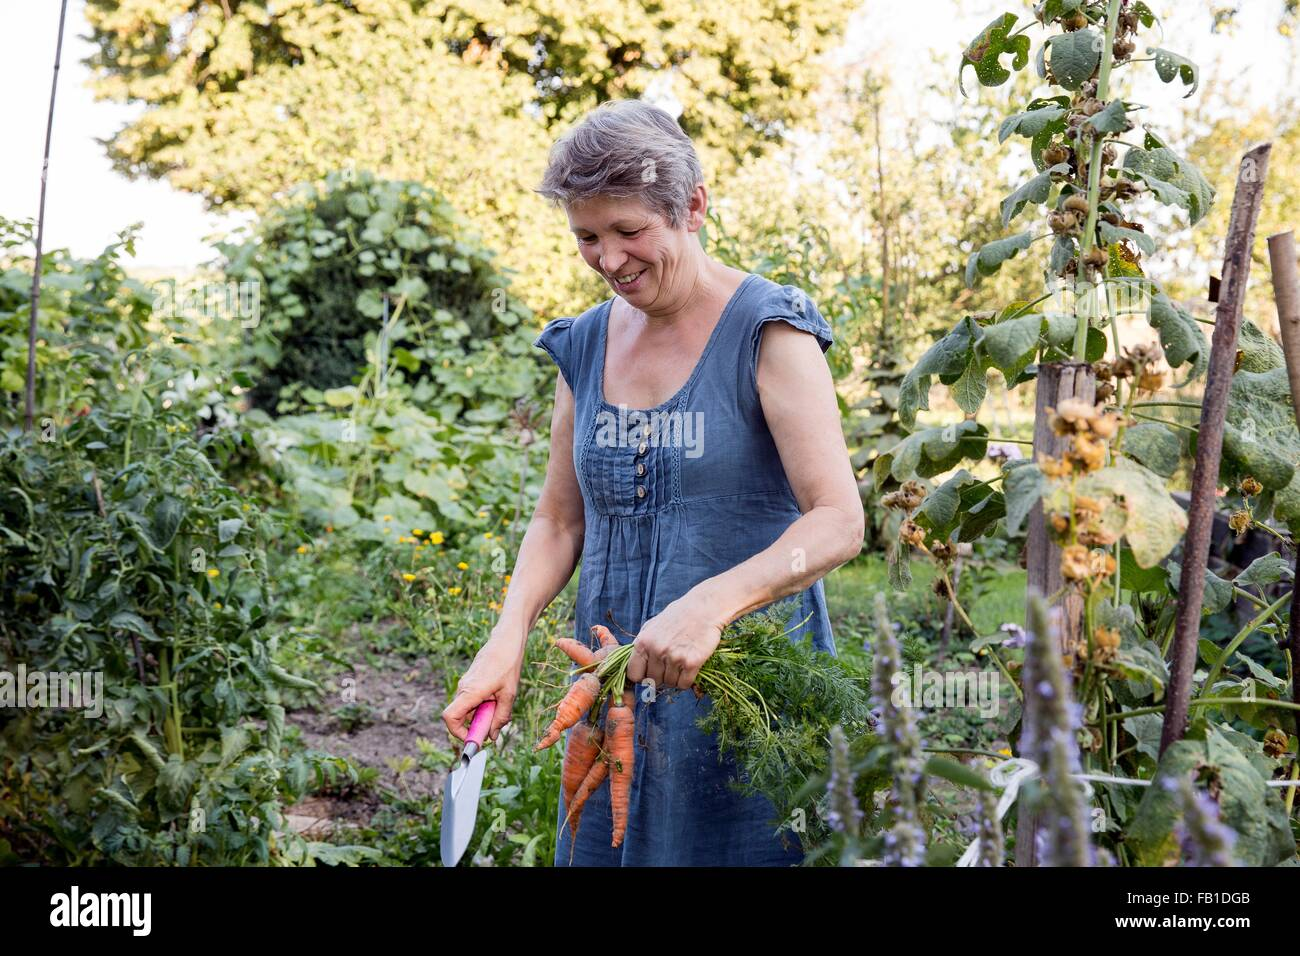 Mature woman gardening, digging up fresh carrots - Stock Image